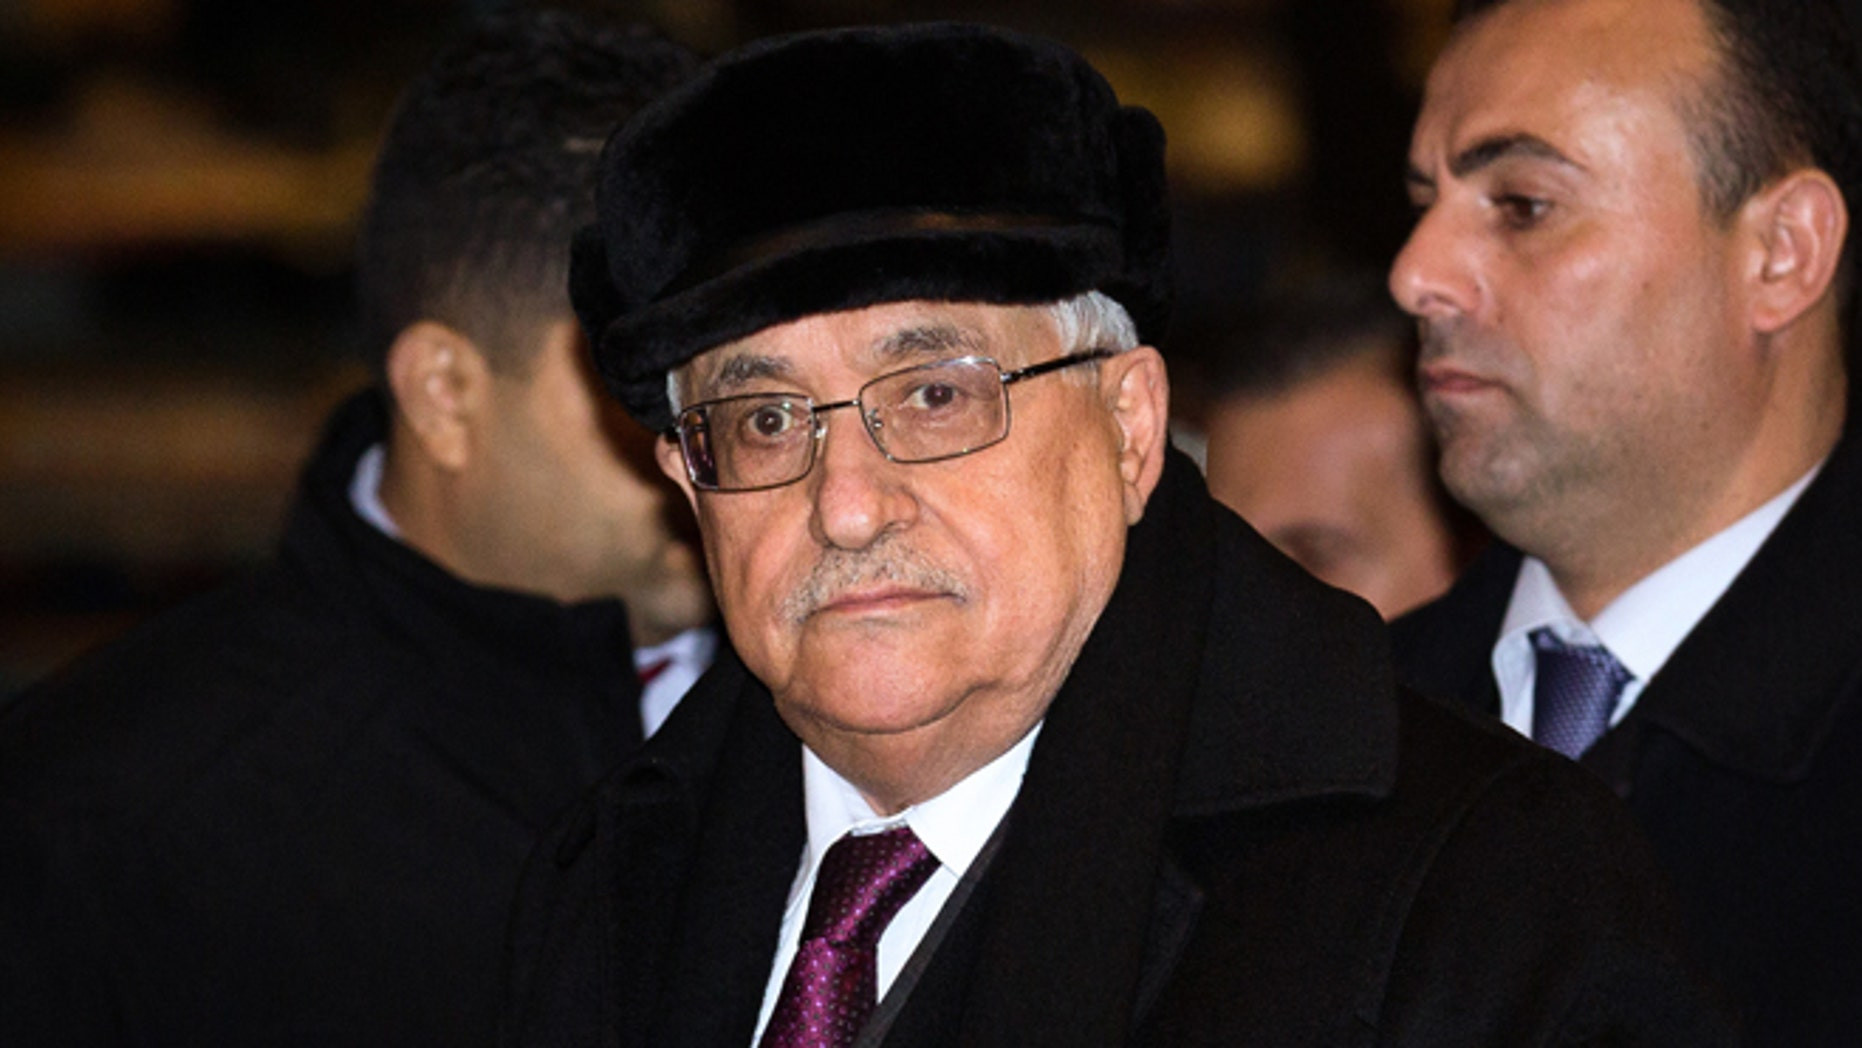 Nov. 27, 2012: Palestinian President Mahmoud Abbas arrives at the United Nations Plaza Hotel in New York.